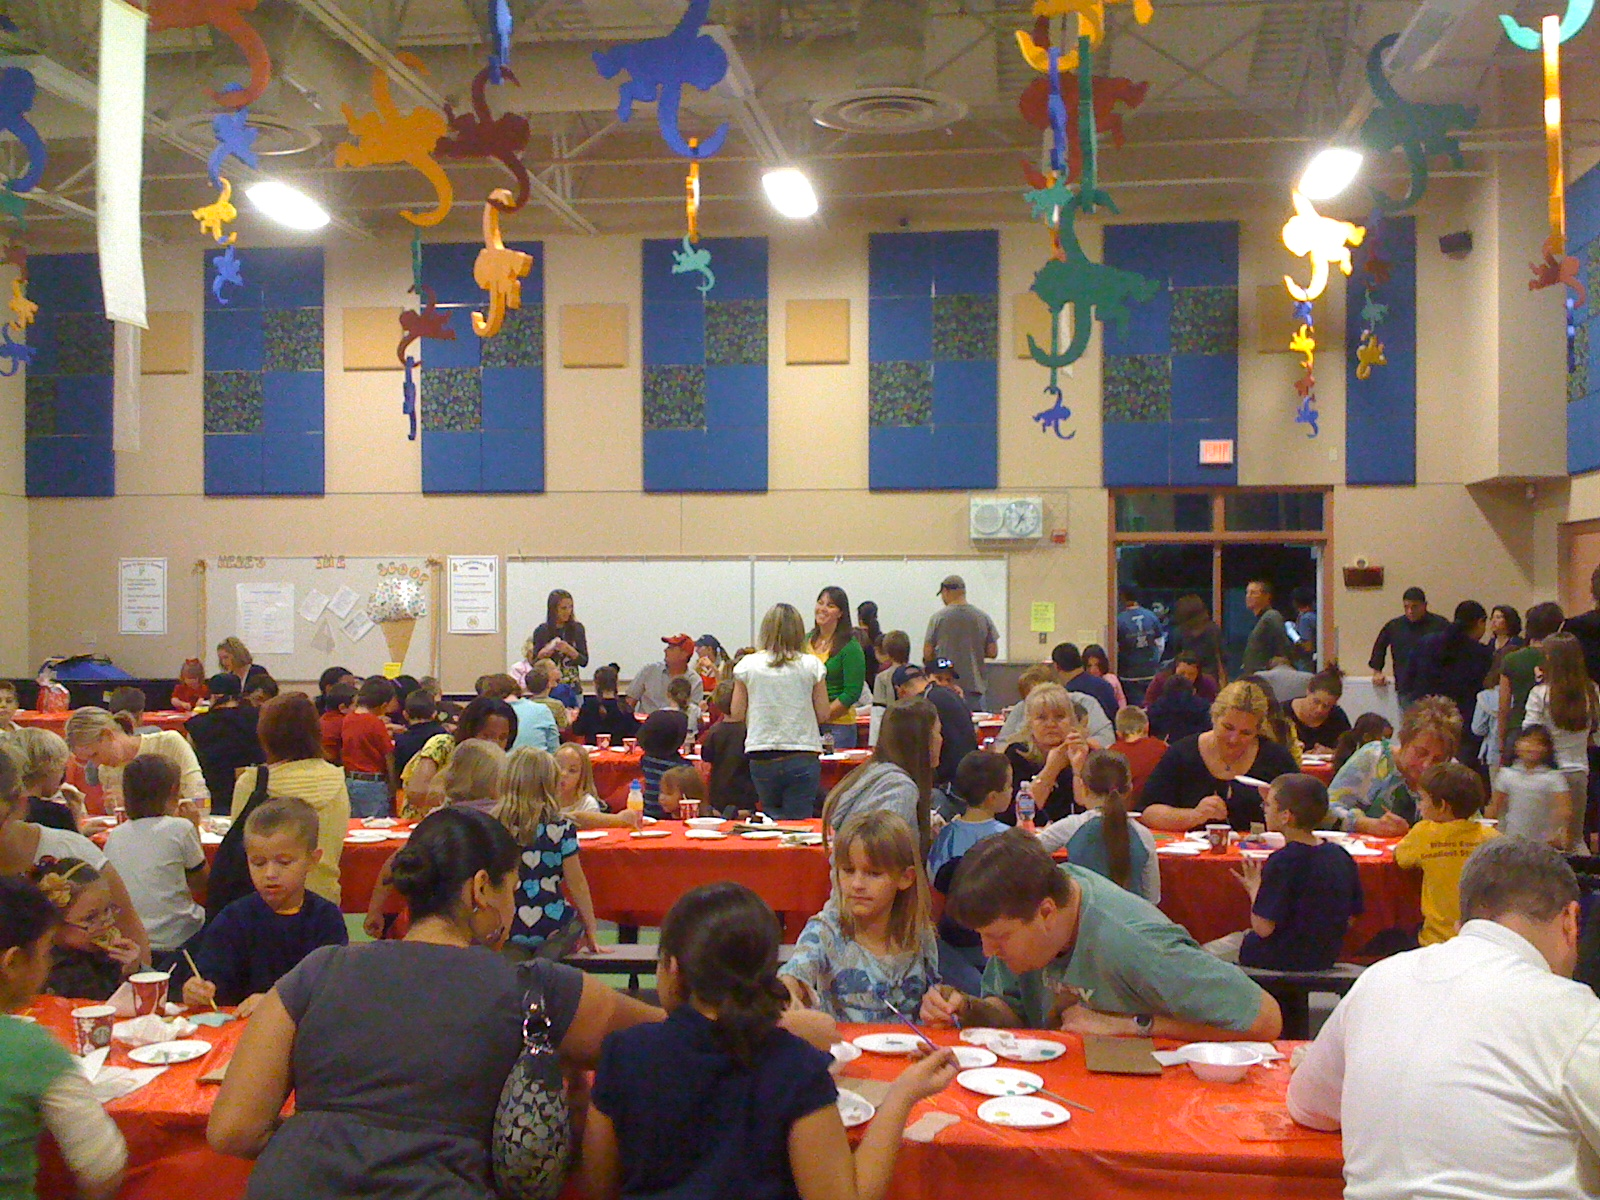 Packed School Cafeteria